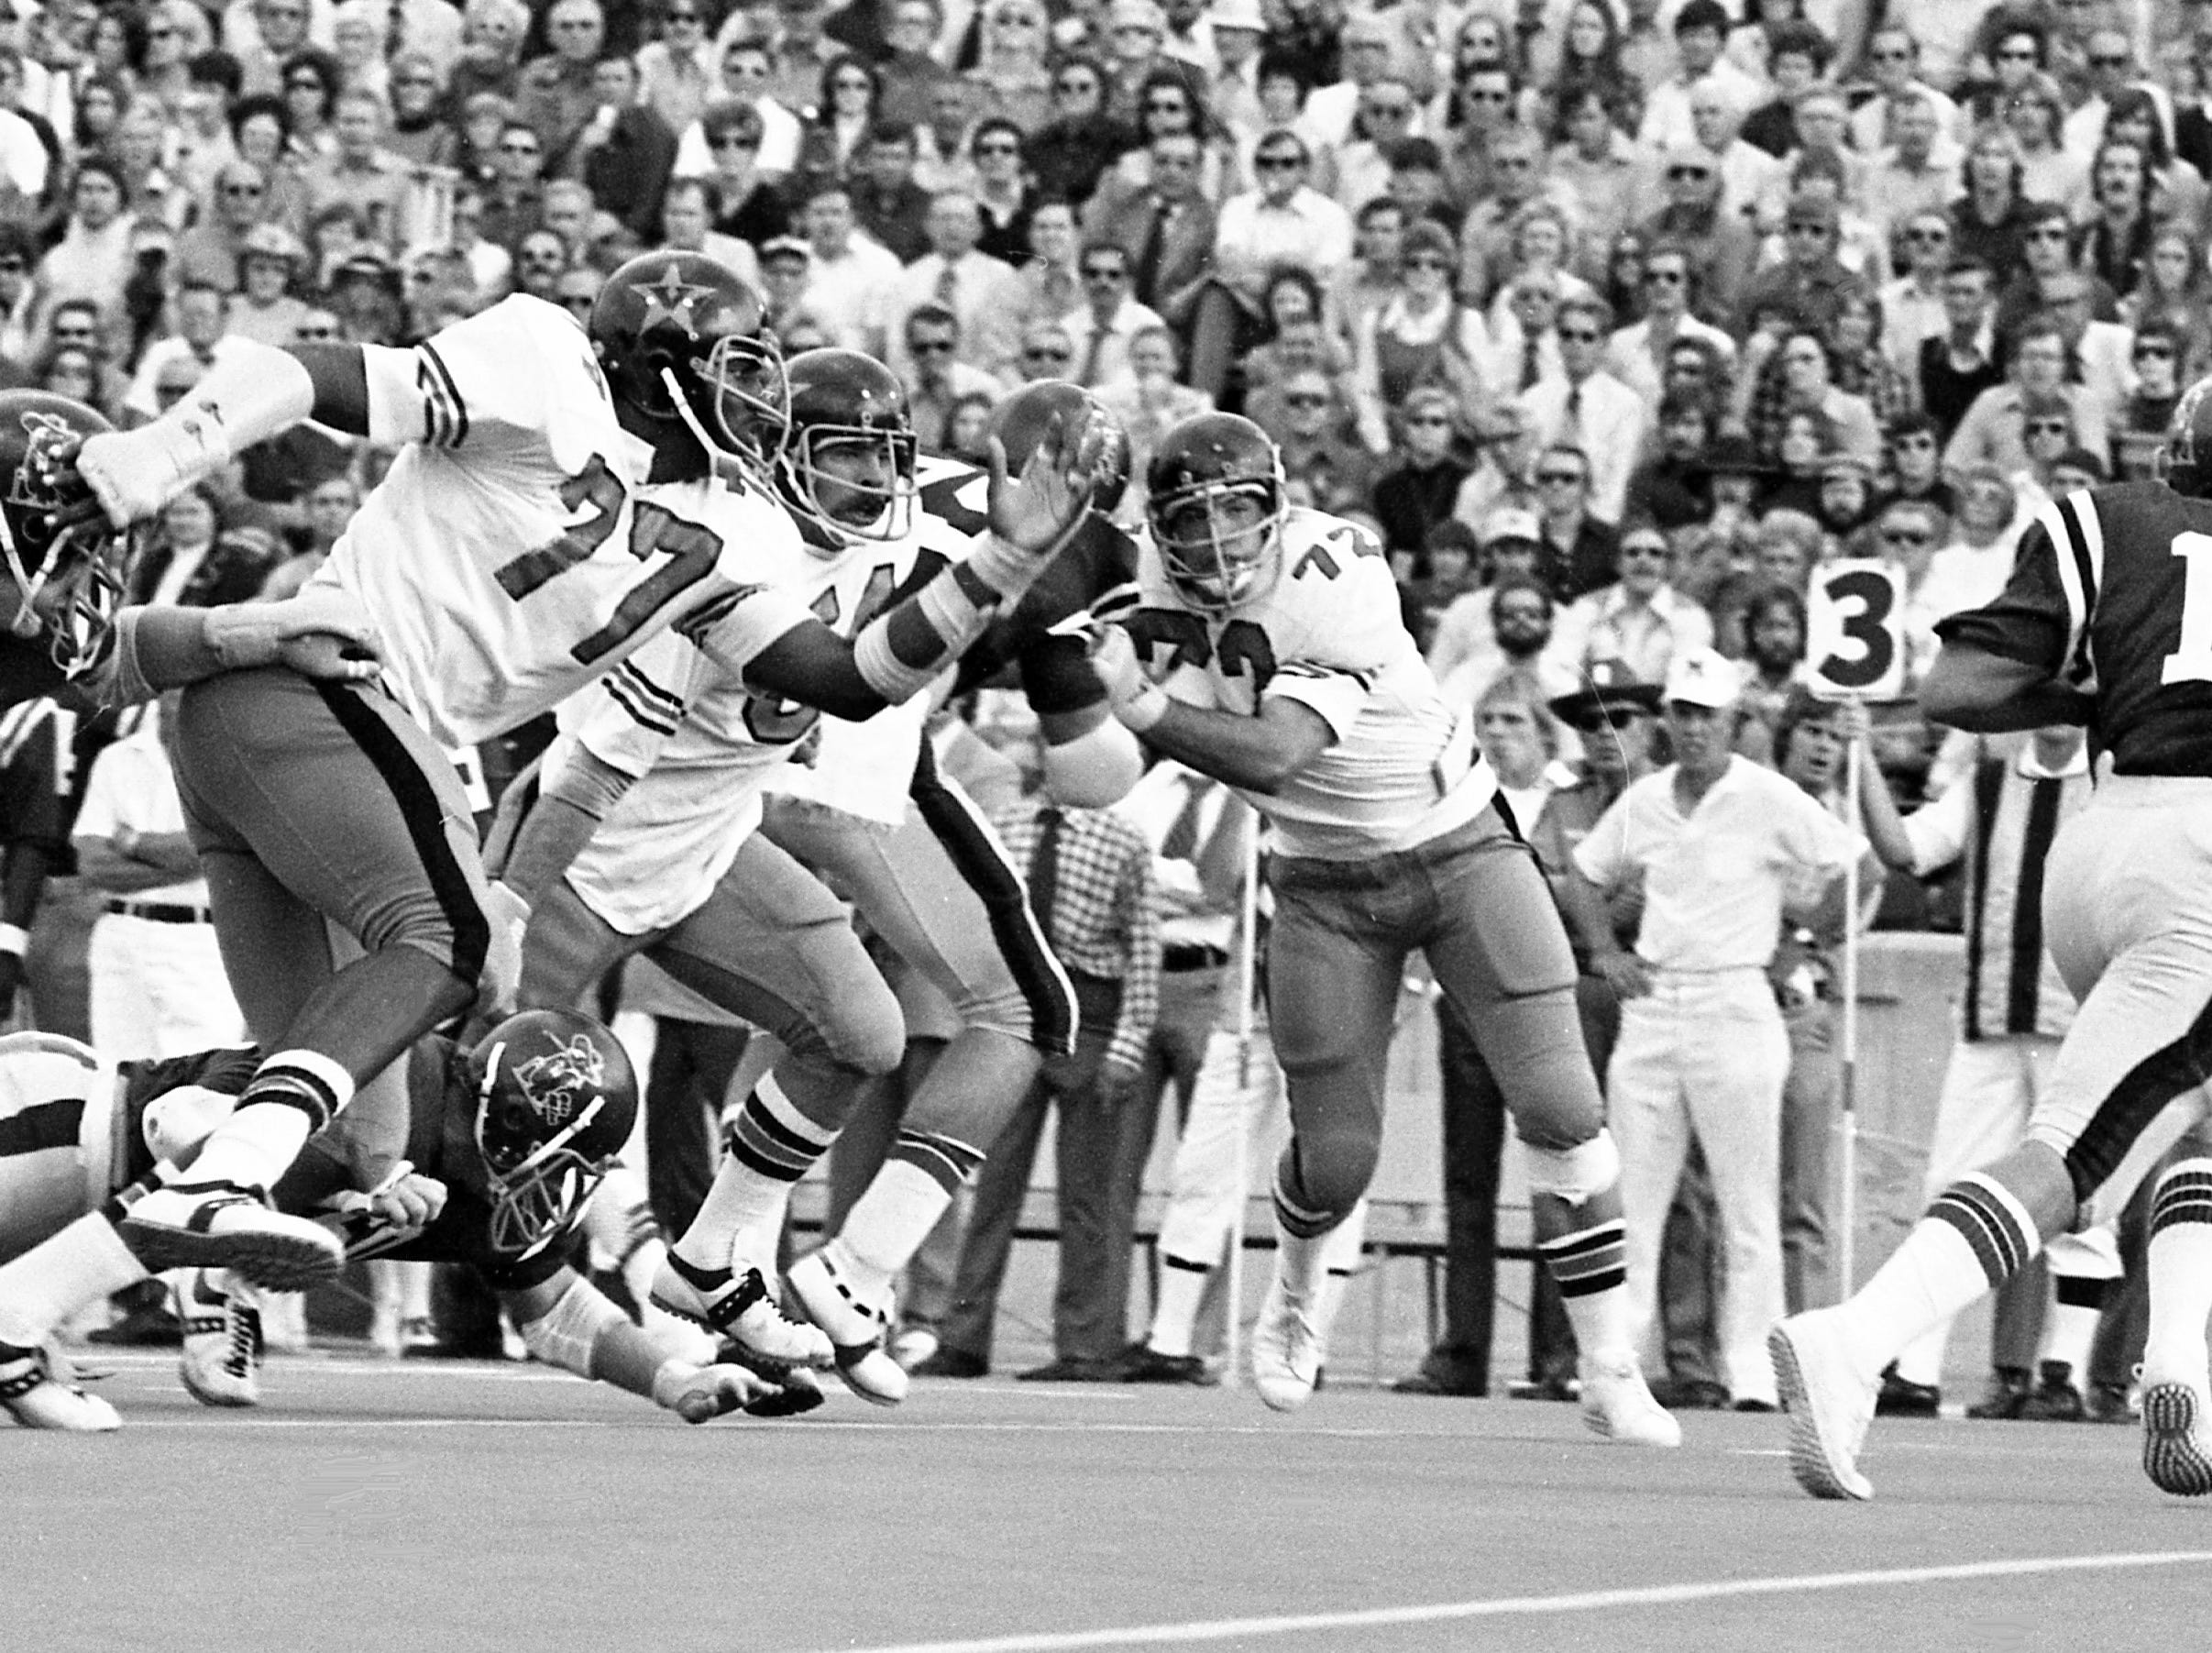 Vanderbilt defensive lineman Dennis Harrison (77) gets by his blocker and head after Ole Miss quarterback Guy Evans (15) in the Commodores 24-14 victory Oct. 26, 1974.